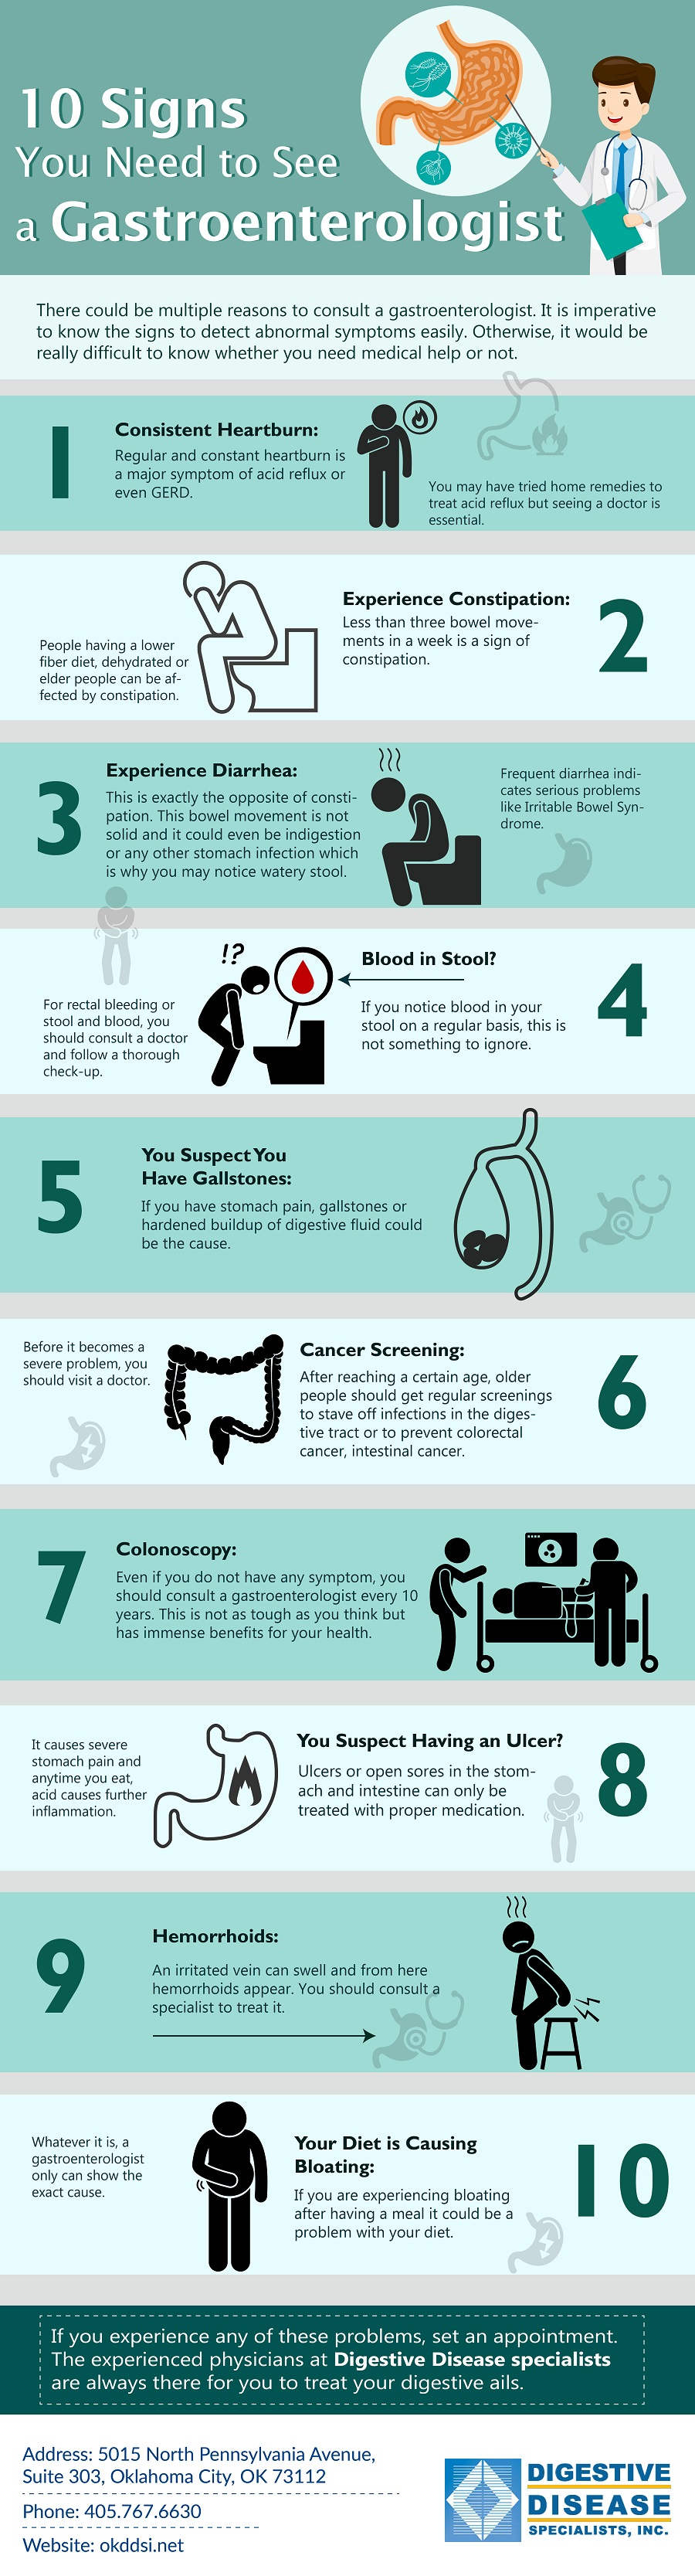 10 Signs You Need to see a Gastroenterologist.jpg